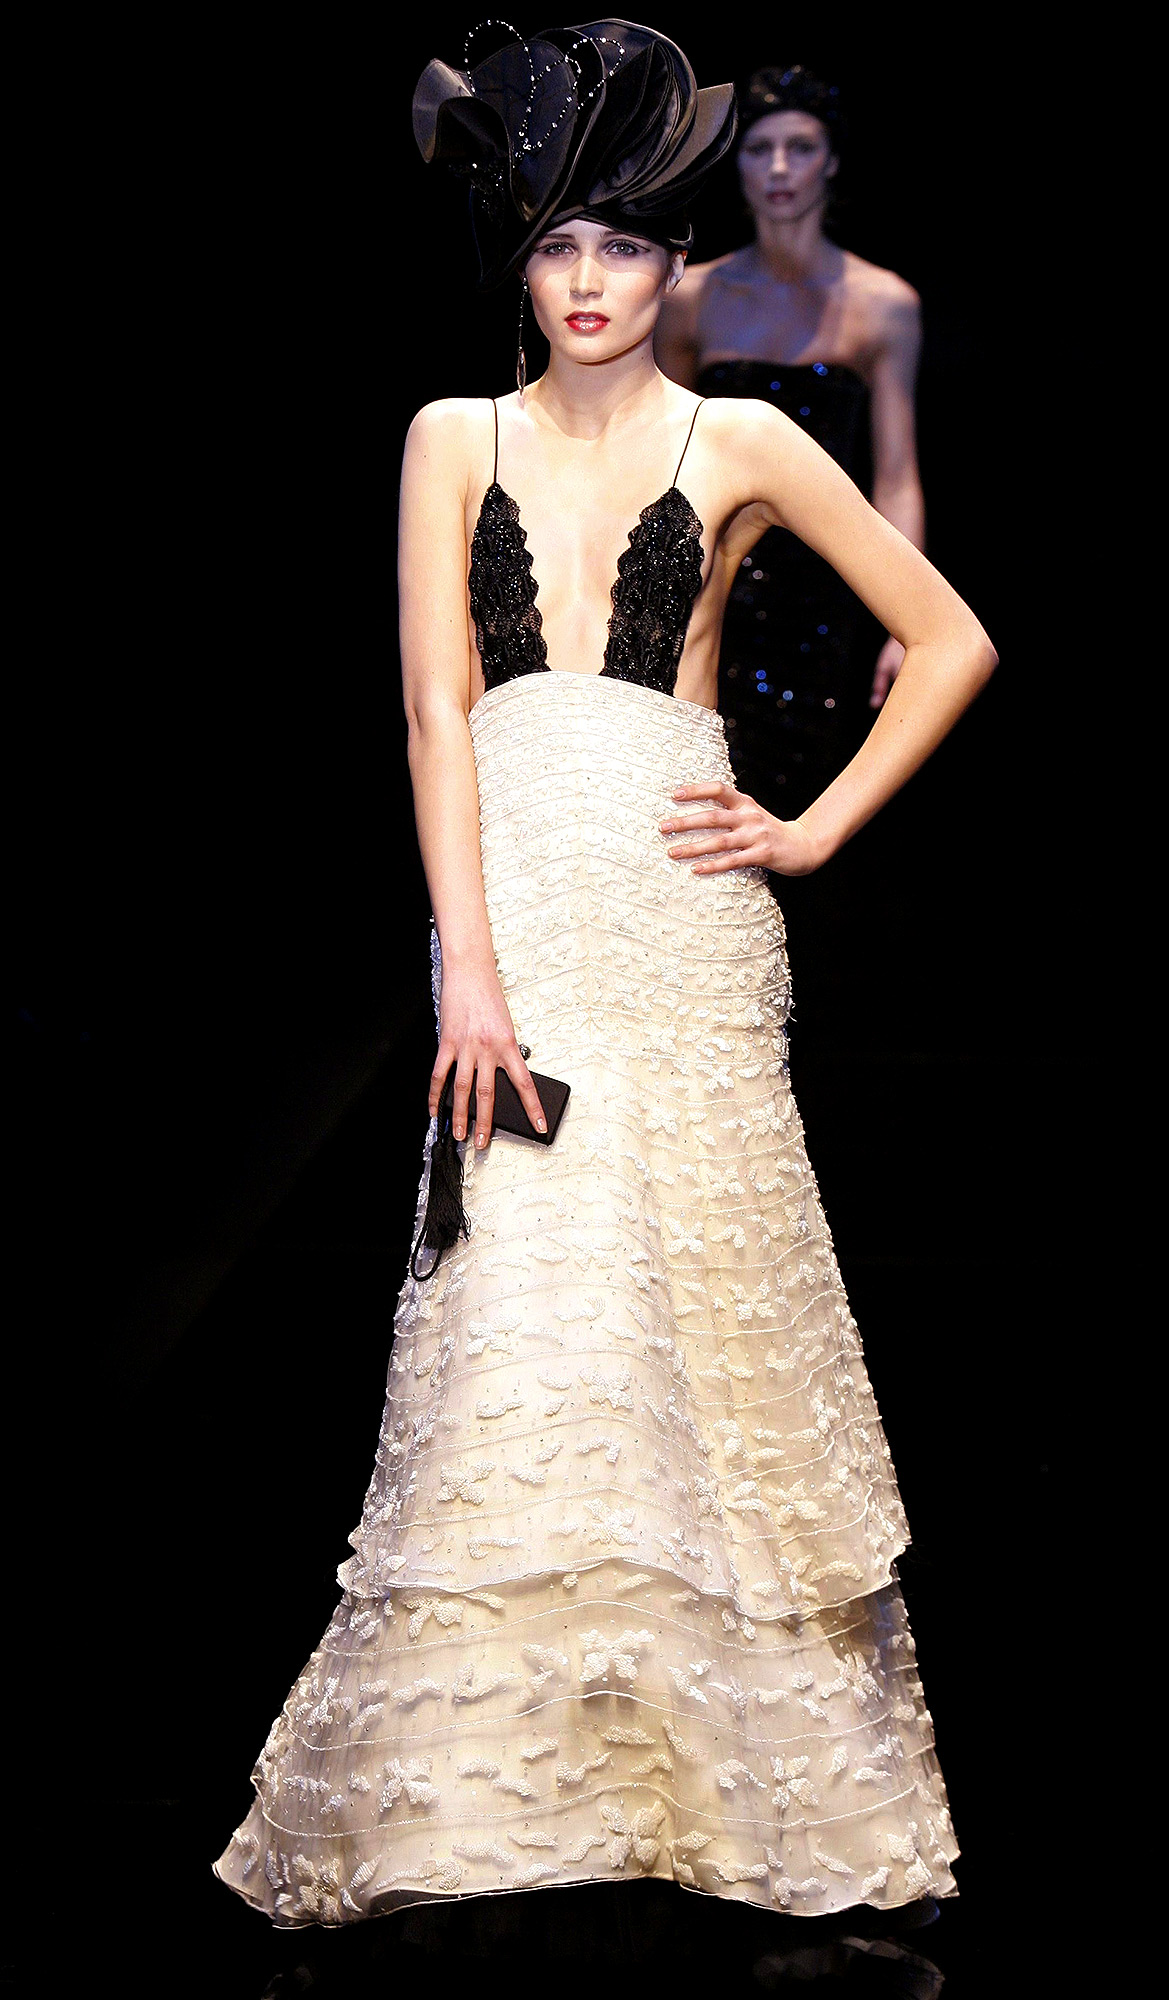 Giorgio Armani, Haute Couture Spring-Summer 2005 Fashion Show in Paris, France On January 24, 2005-